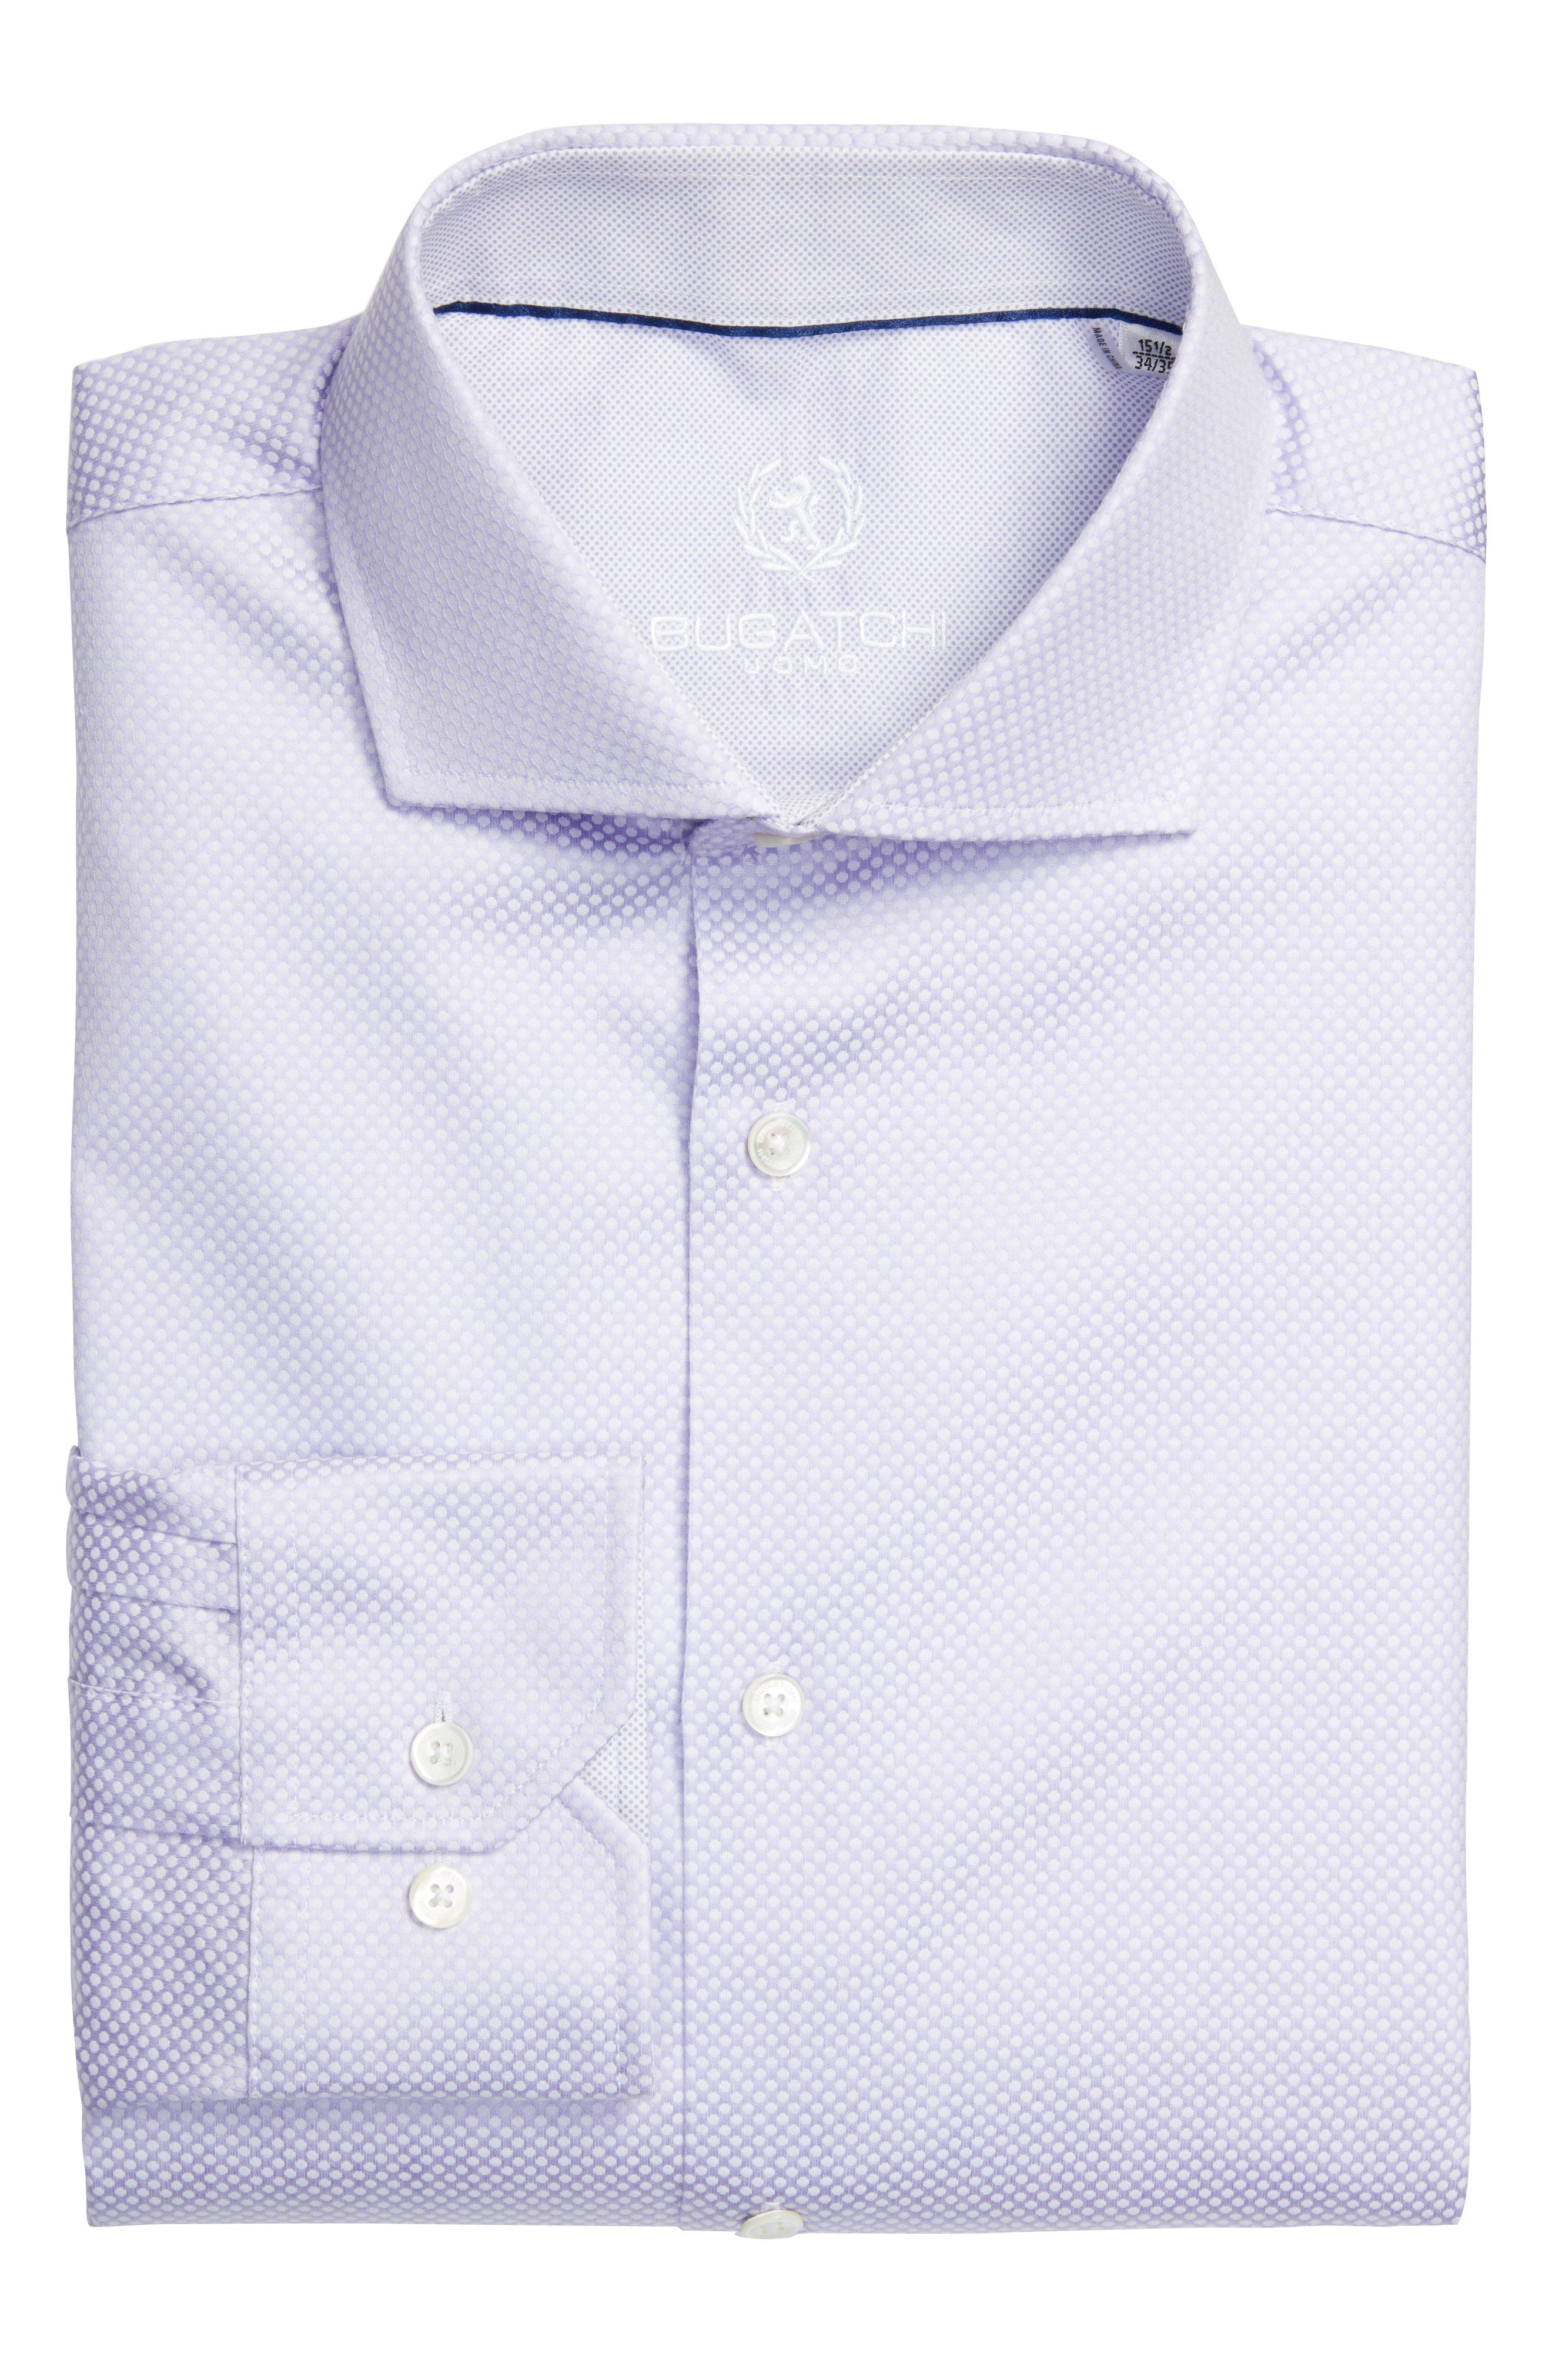 Bugatchi Trim Fit Dot Jacquard Dress Shirt